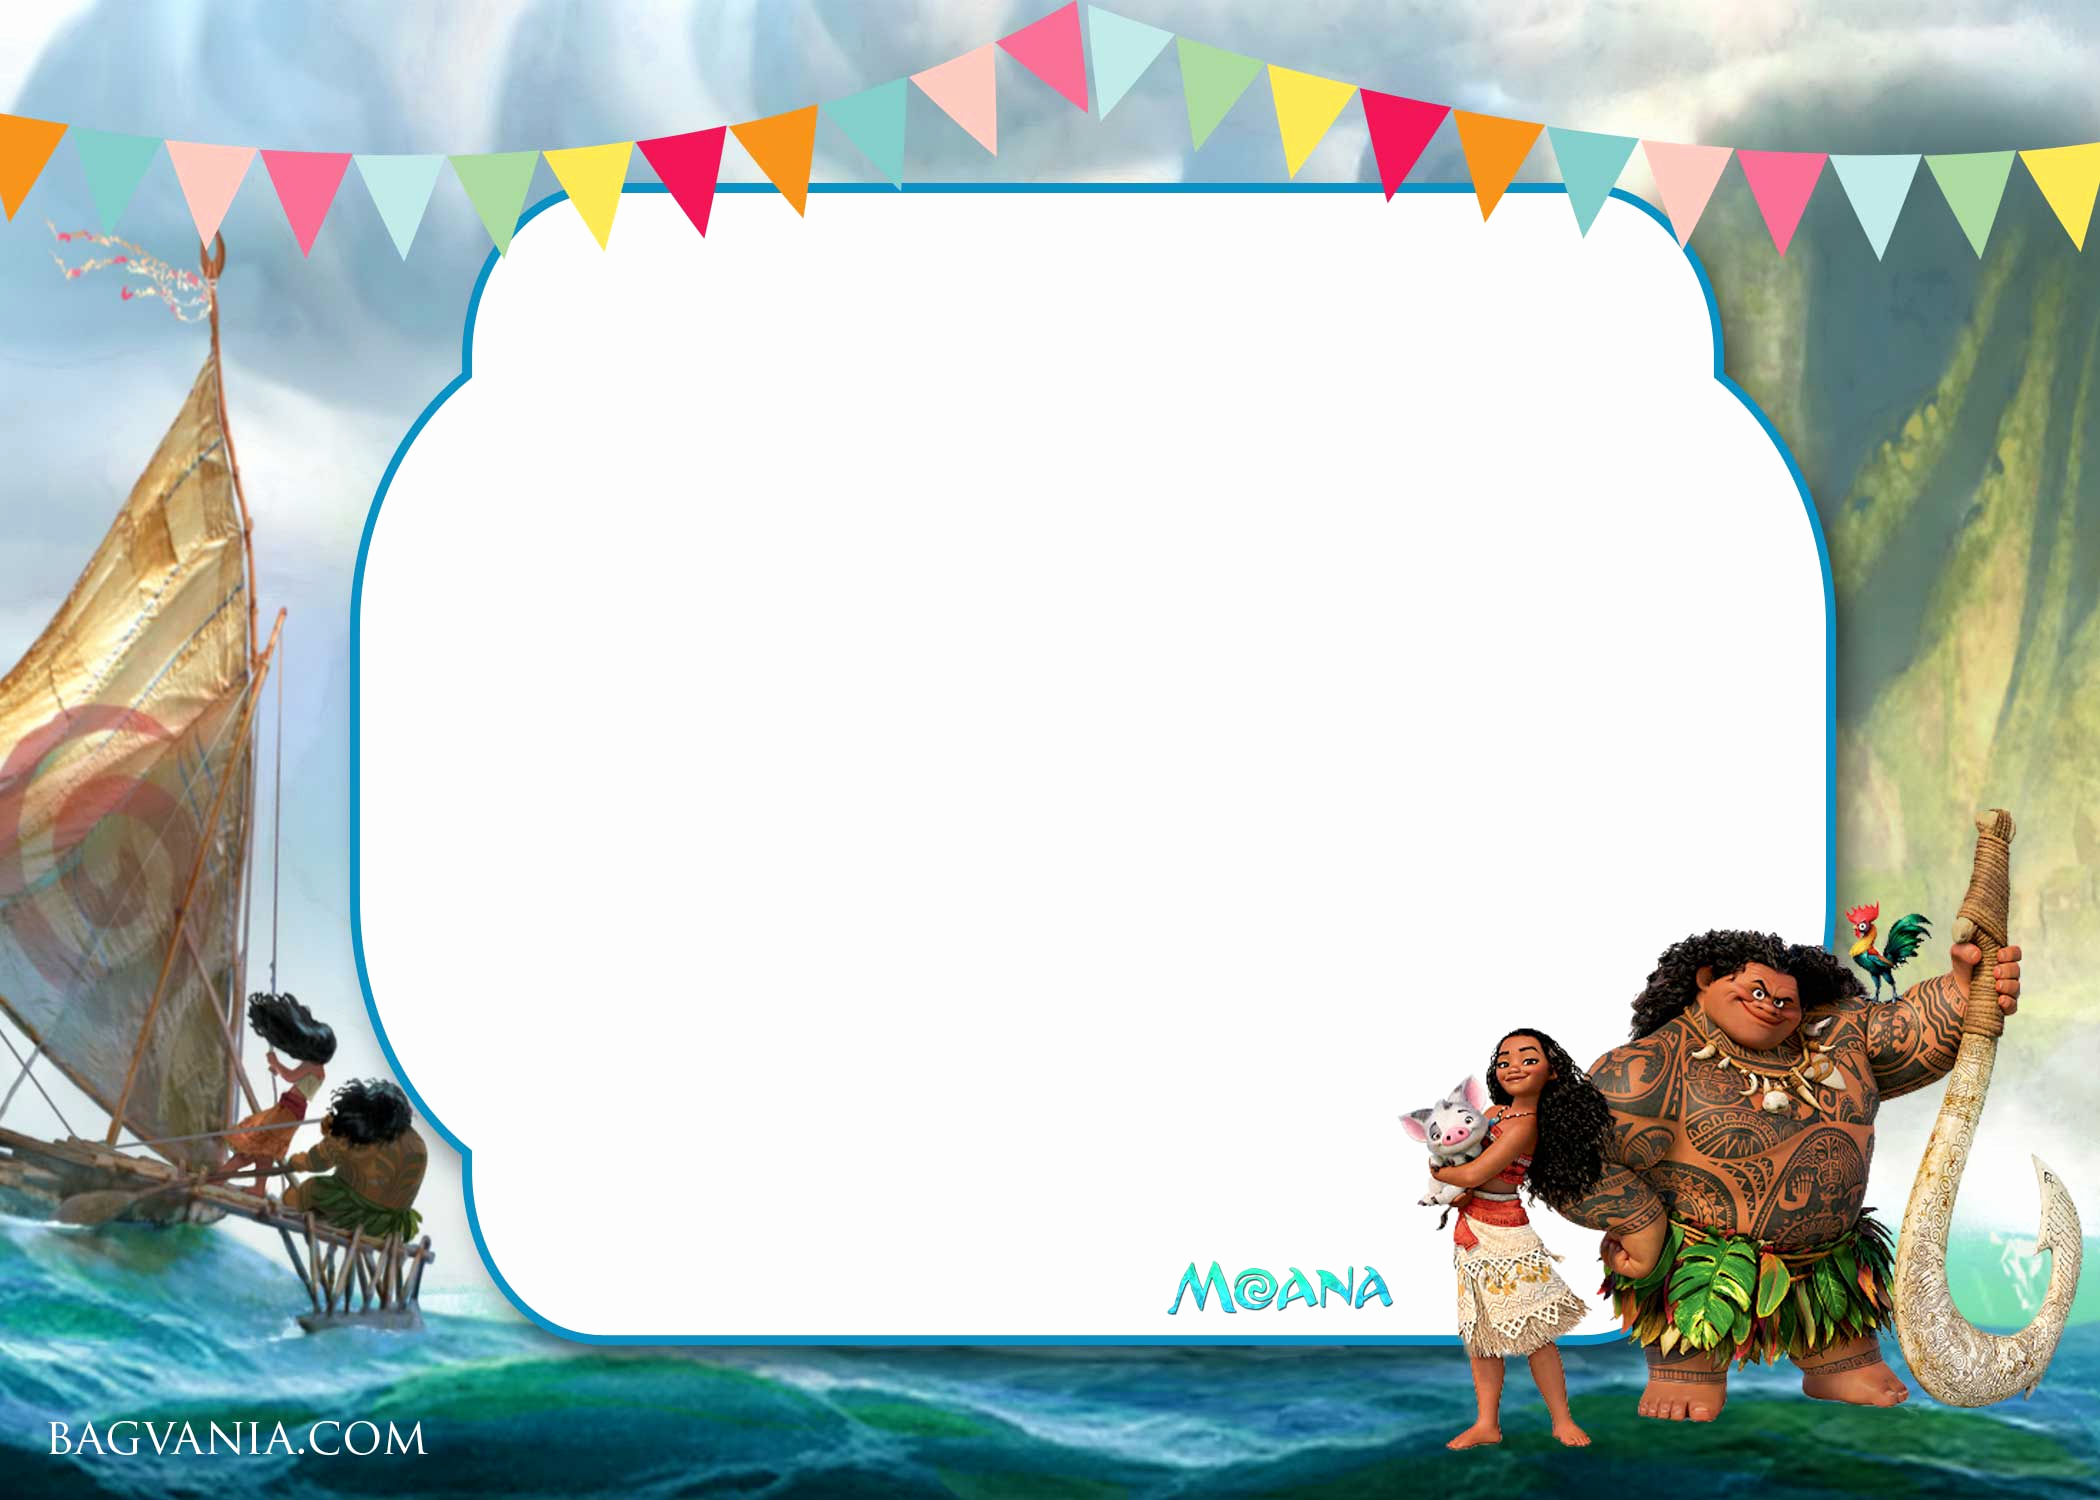 Moana Invitation Template Free Fresh Free Moana Birthday Invitation Template Free Invitation